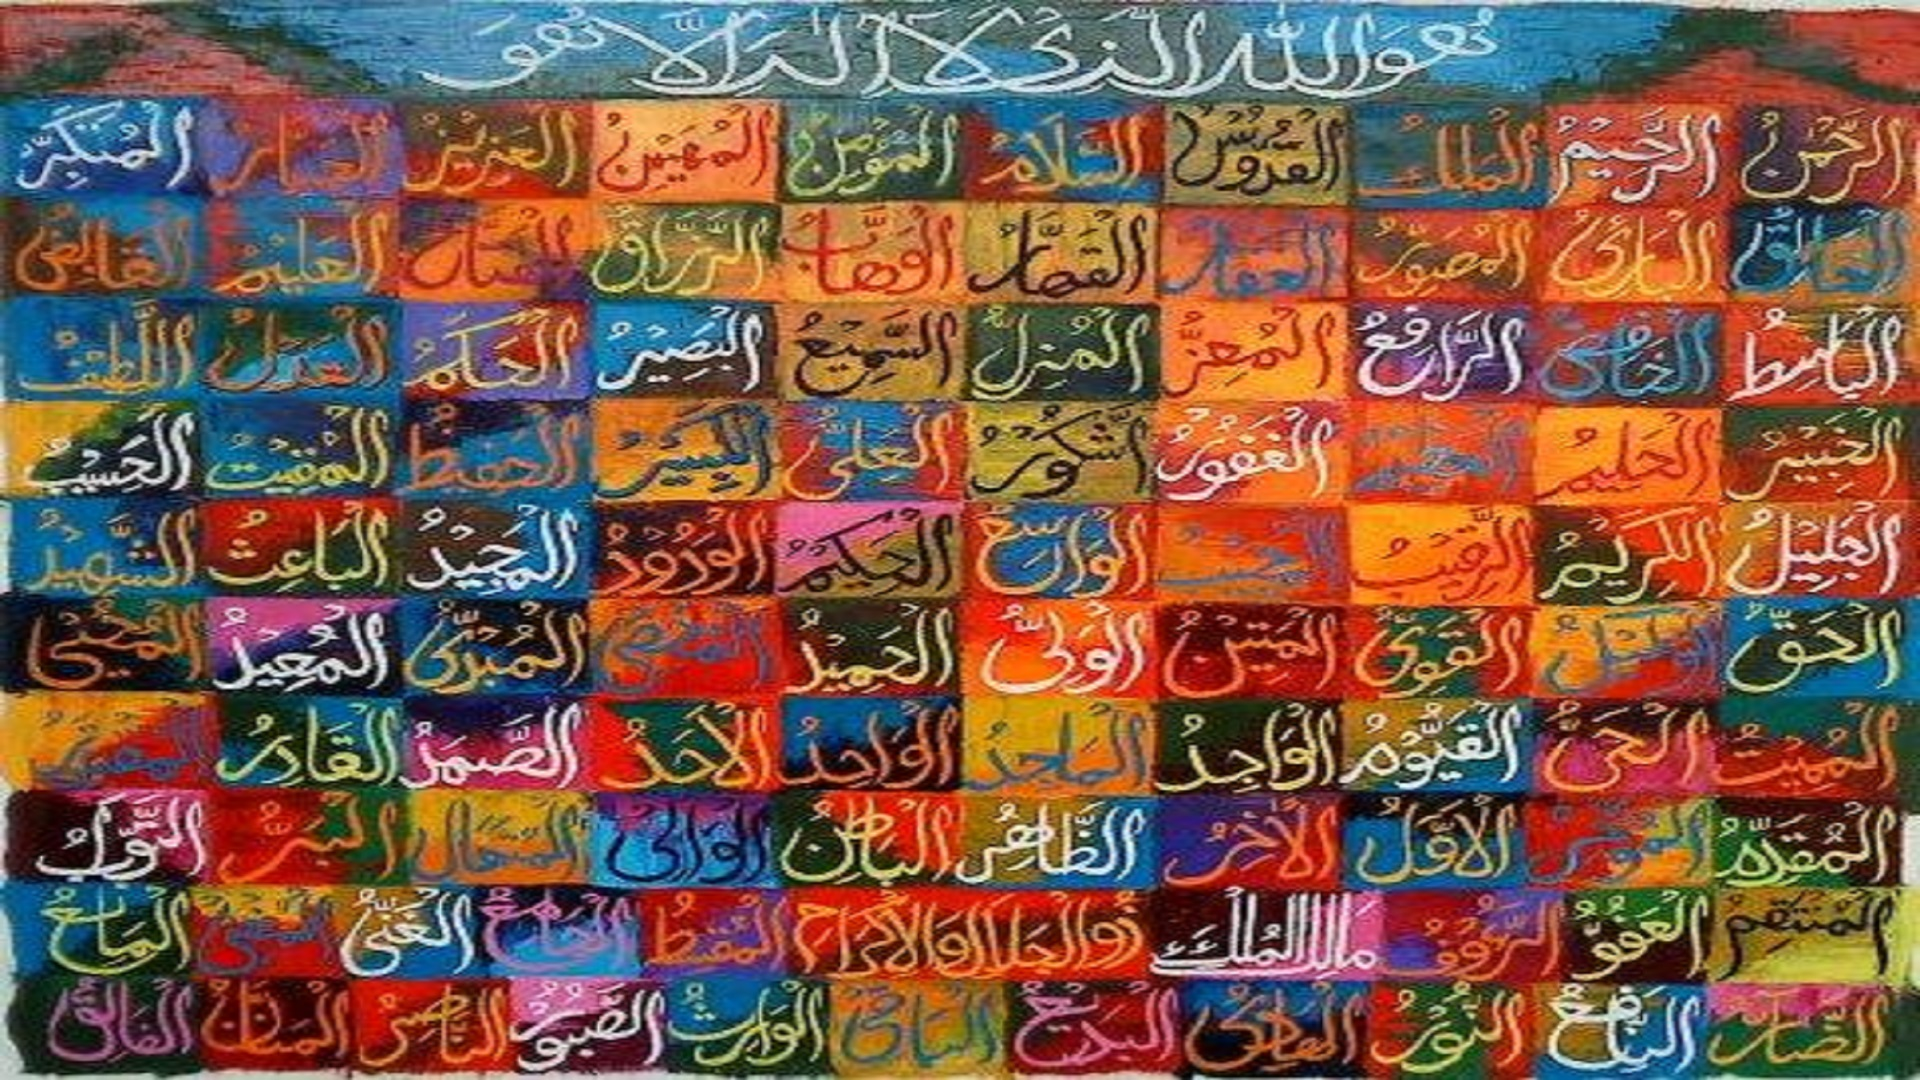 99 Names Of Allah Hd allah -pak- name -free- hd -wallpapers -